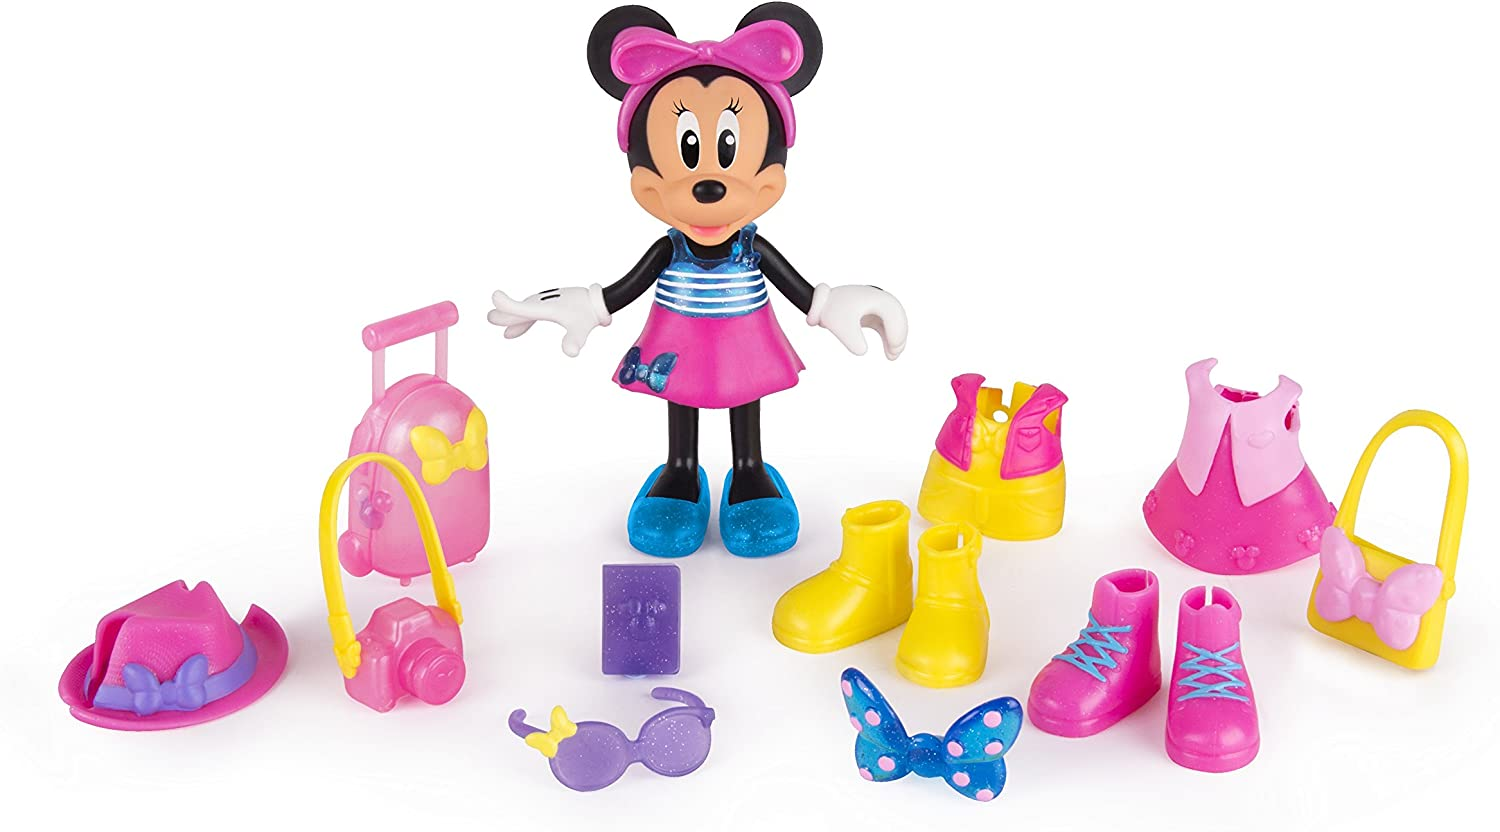 Minnie Mouse- Fashion Dolls 2: Viajera, Multicolor (IMC Toys ...